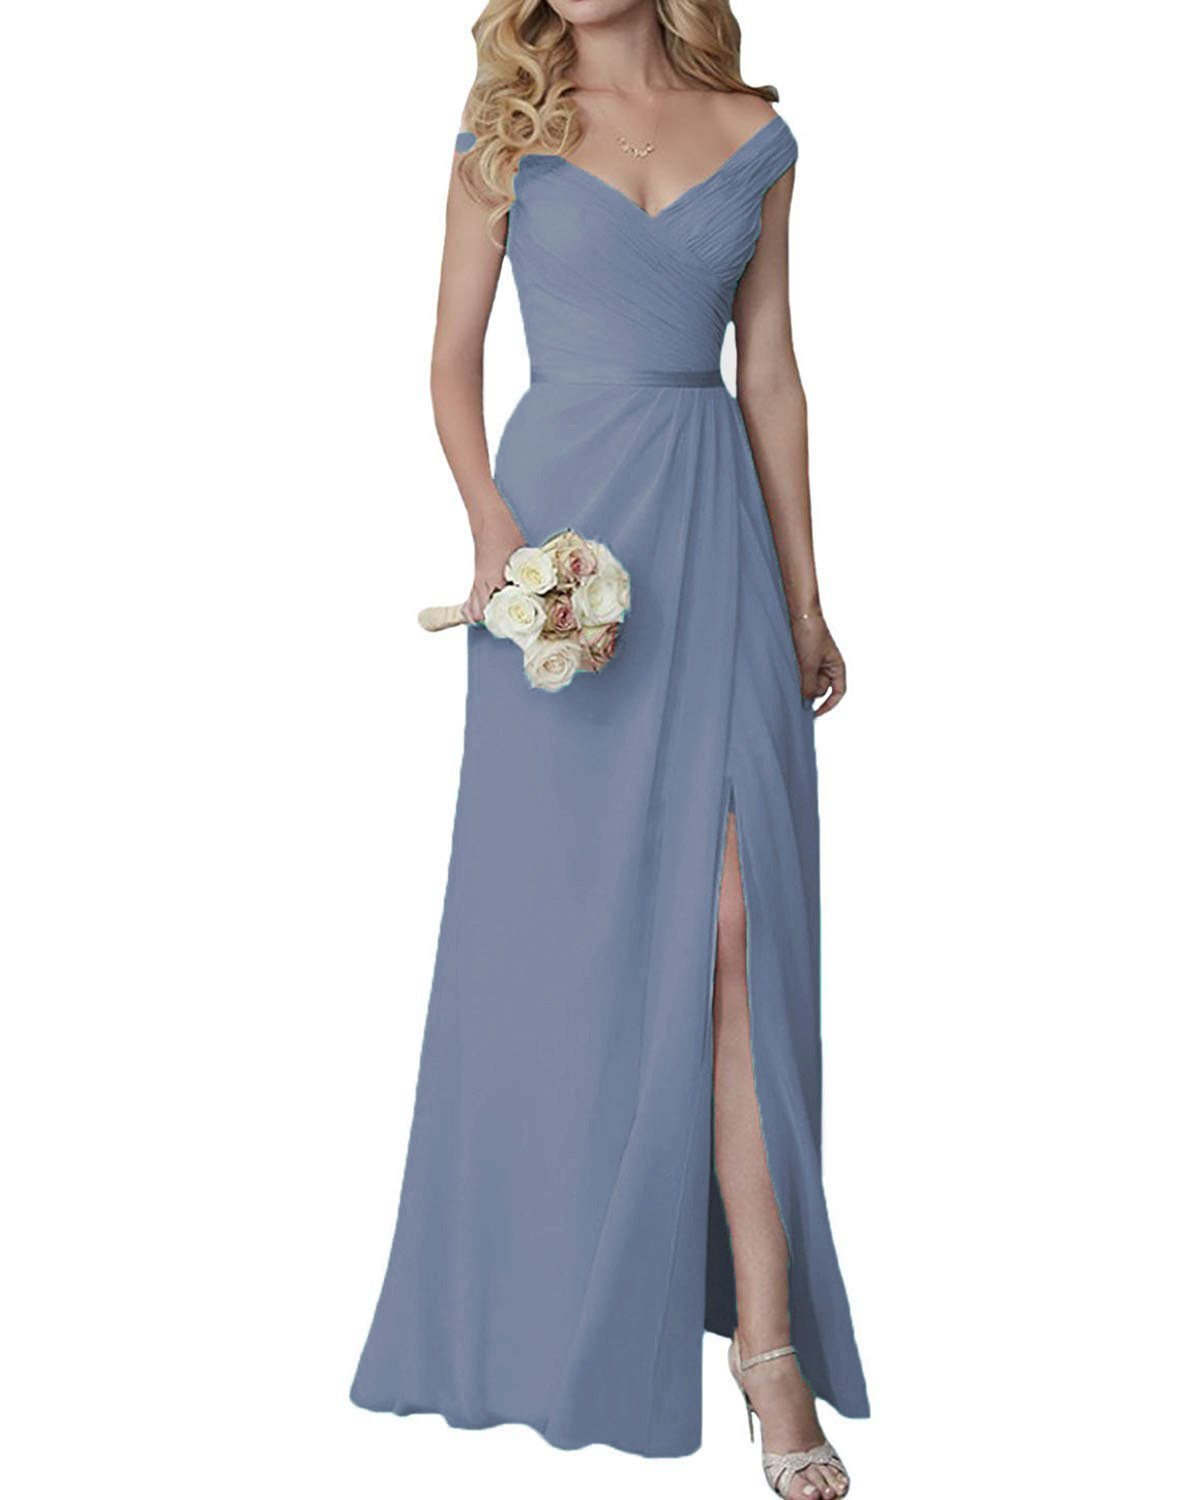 Cute V-Neck Bridesmaid Dresses Slit Long Chiffon Wedding Evening Gown